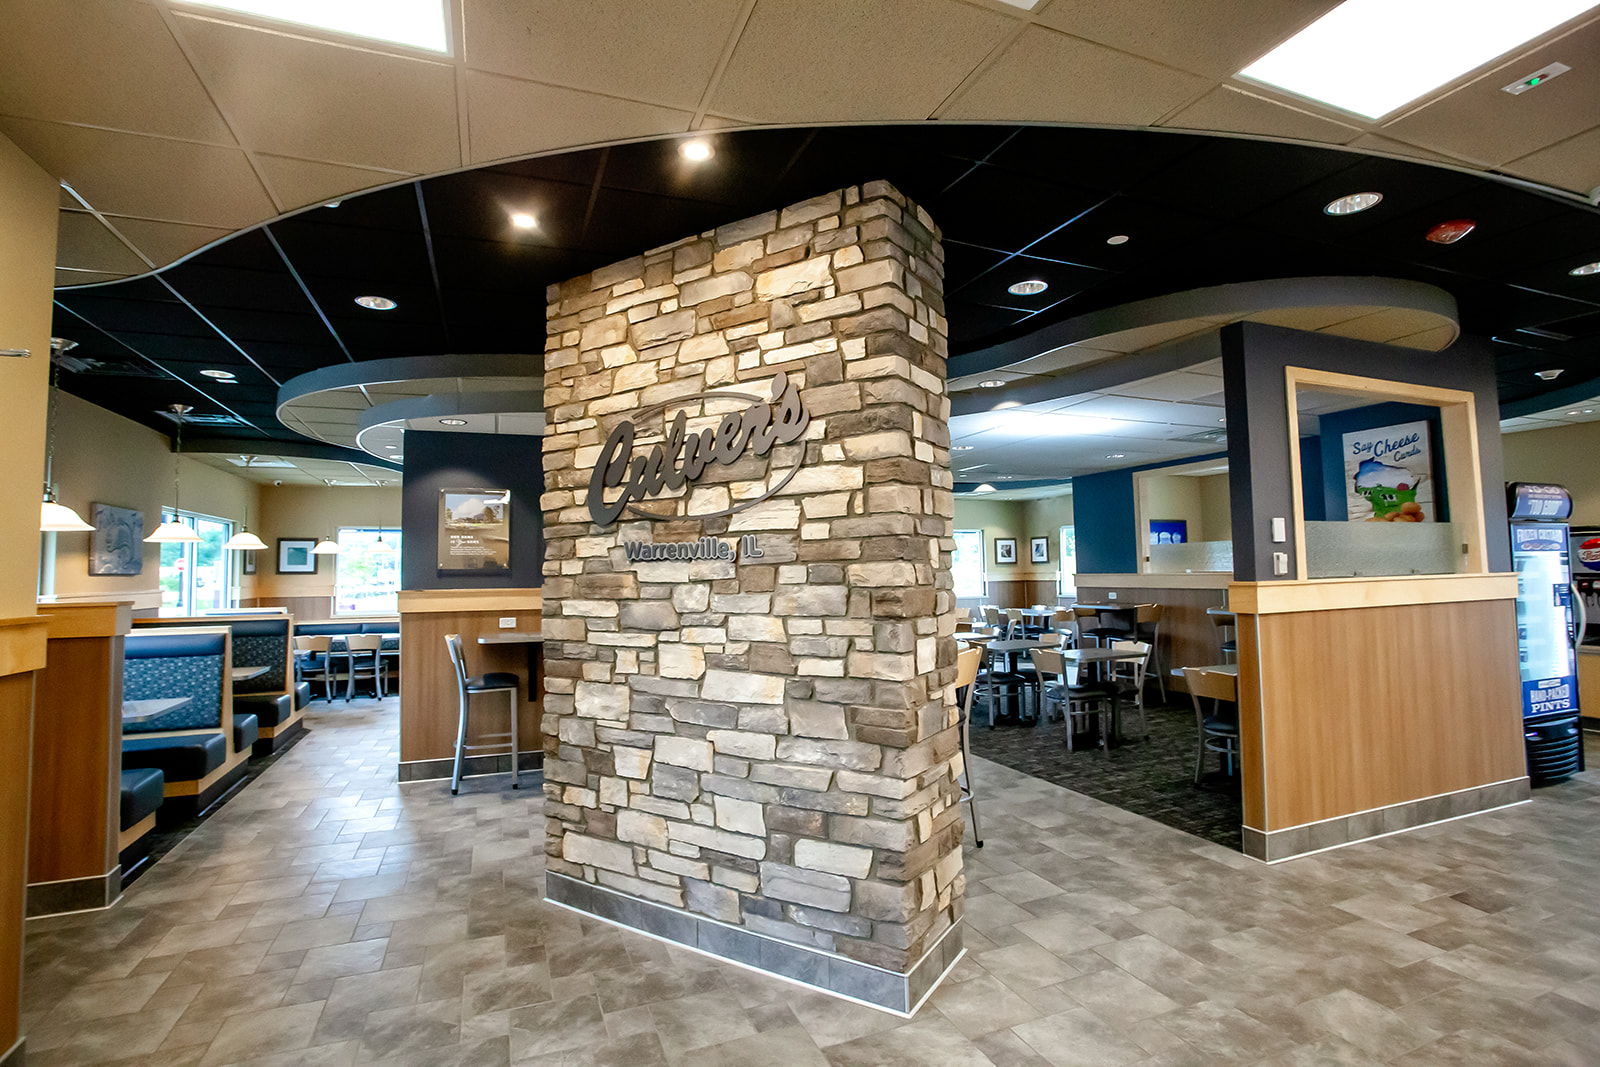 Culver's - Warrenville, IL